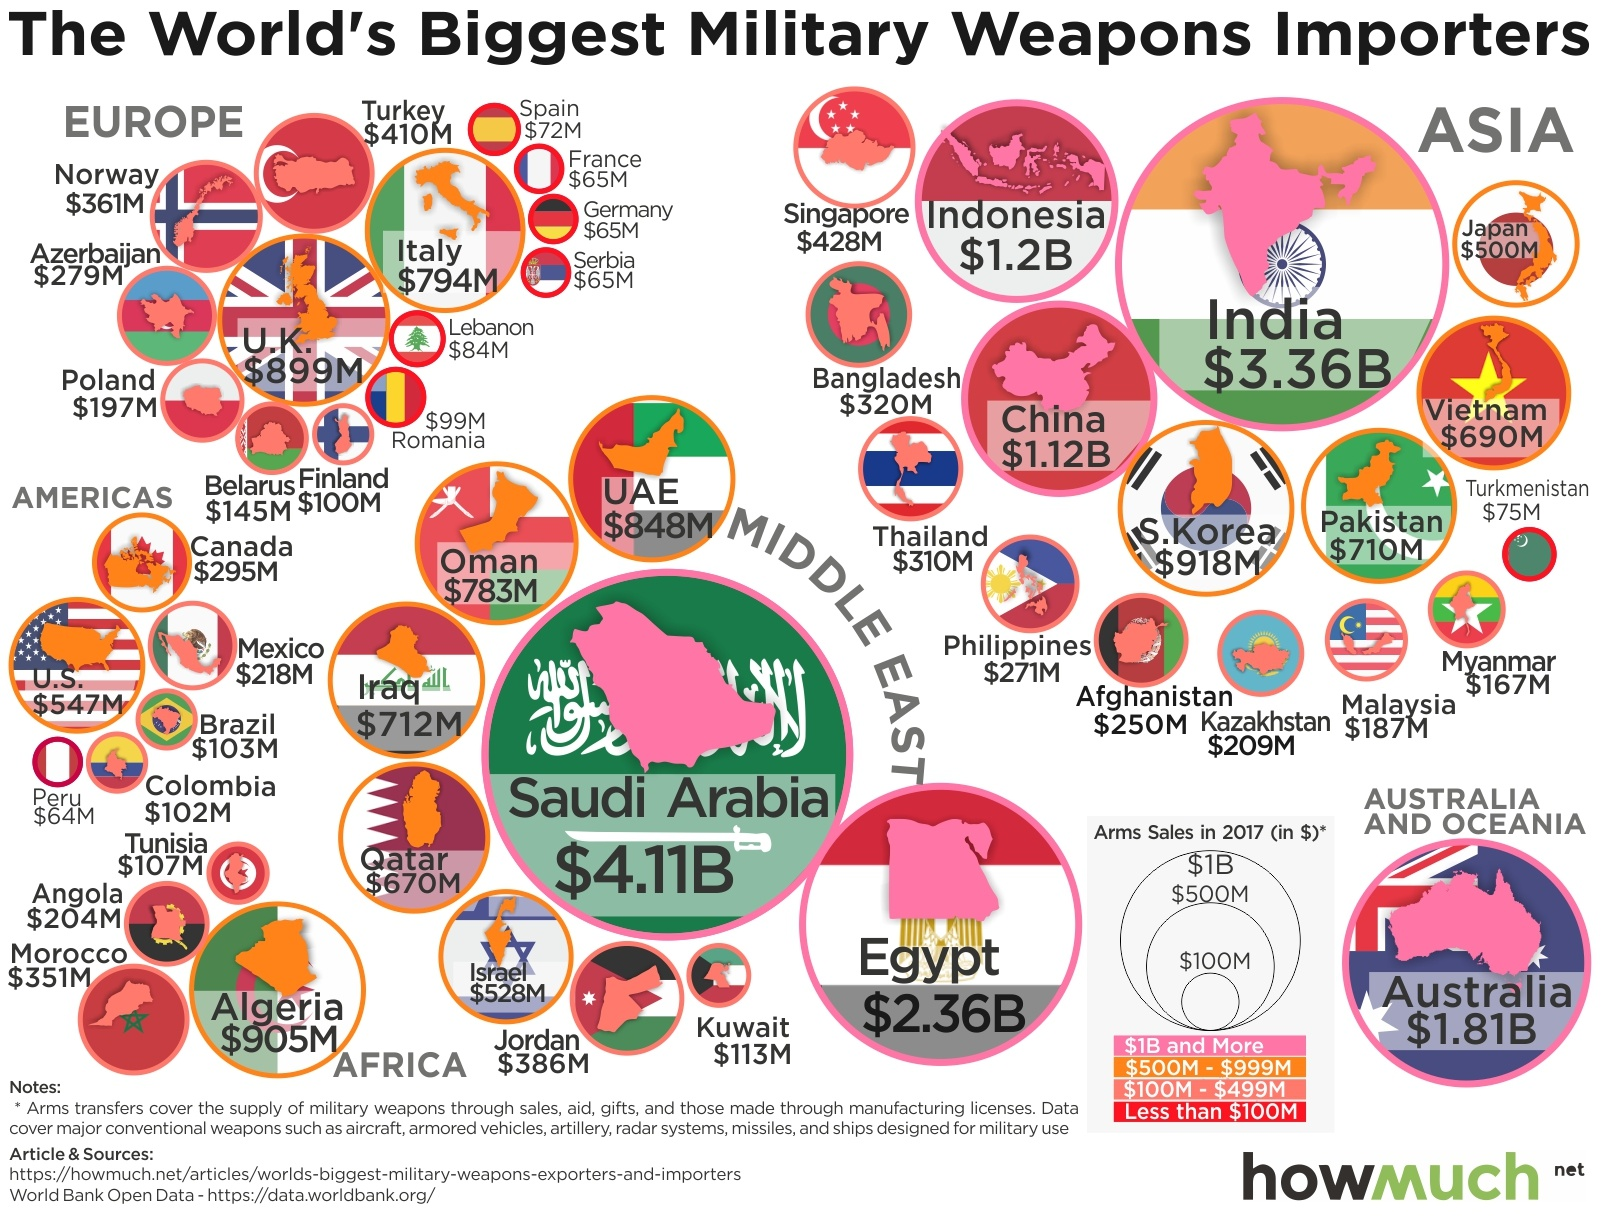 Lords of War: Visualizing the Global Arms Trade Network